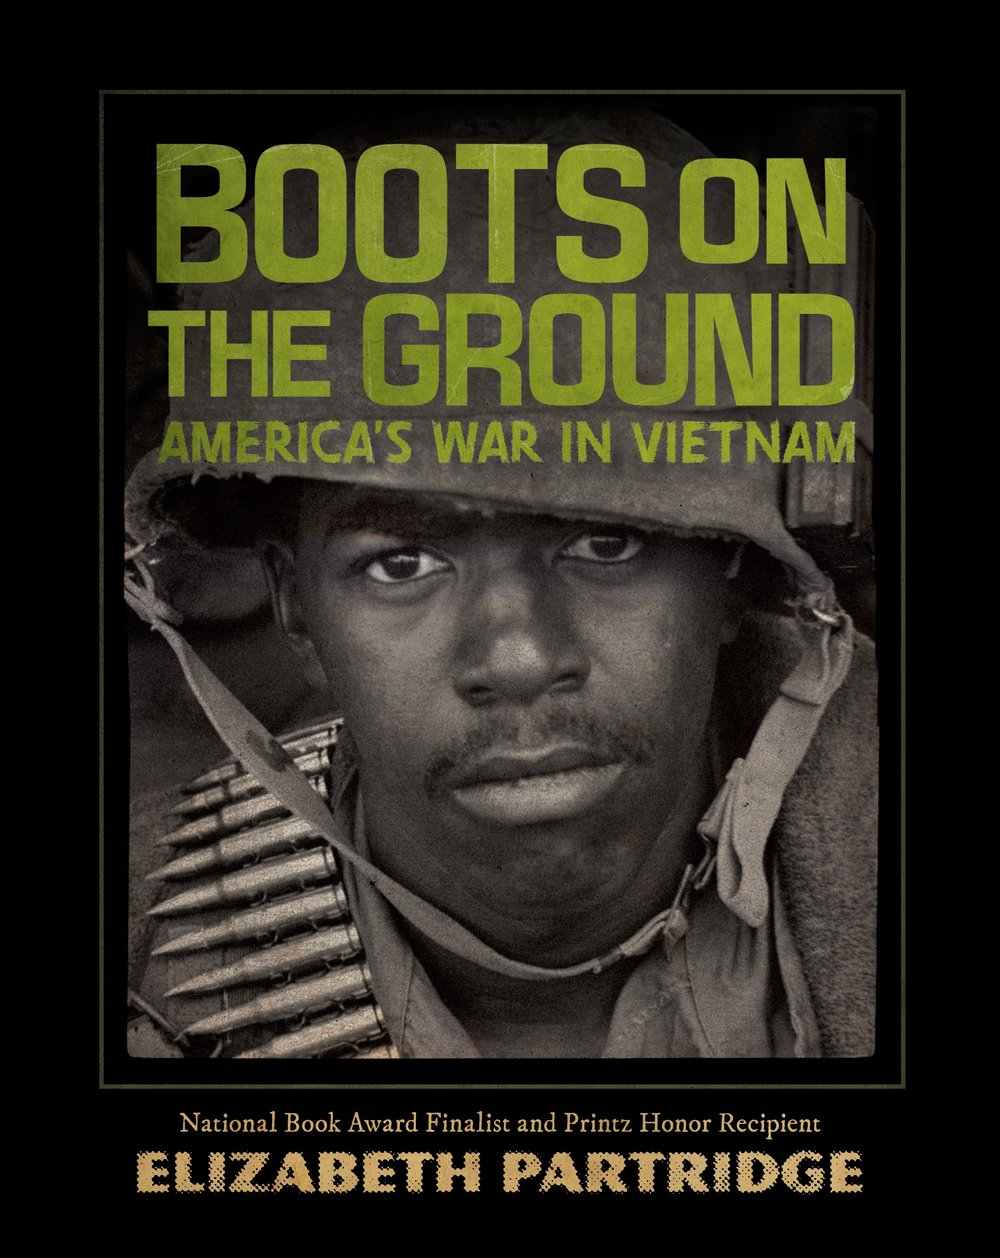 Boots on the Ground: America's War in Vietnam - The Vietnam War directly involved four U.S. presidents and cut short the lives of nearly 60,000 American soldiers during more than a decade of fighting. It polarized and divided our country in ways that still have not healed.The history of this era is complex; the cultural impact extraordinary. But it's the personal stories of eight people—six American soldiers, one American nurse, and one Vietnamese refugee—that create the heartbeat of Boots on the Ground. From dense jungles and terrifying firefights to chaotic medic rescues and evacuations, each individual experience reveals a different facet of the war and moves us forward in time. Alternating with these chapters are profiles of key American leaders and events, reminding us of all that was happening at home, from Kent State to Woodstock to Watergate.Viking Young Readers 2018ShelfTalkerElizabeth Partridge uses the voices of presidents, infantrymen, nurses, protestors and others to bring readers an approachable and captivating history of the Vietnam War.